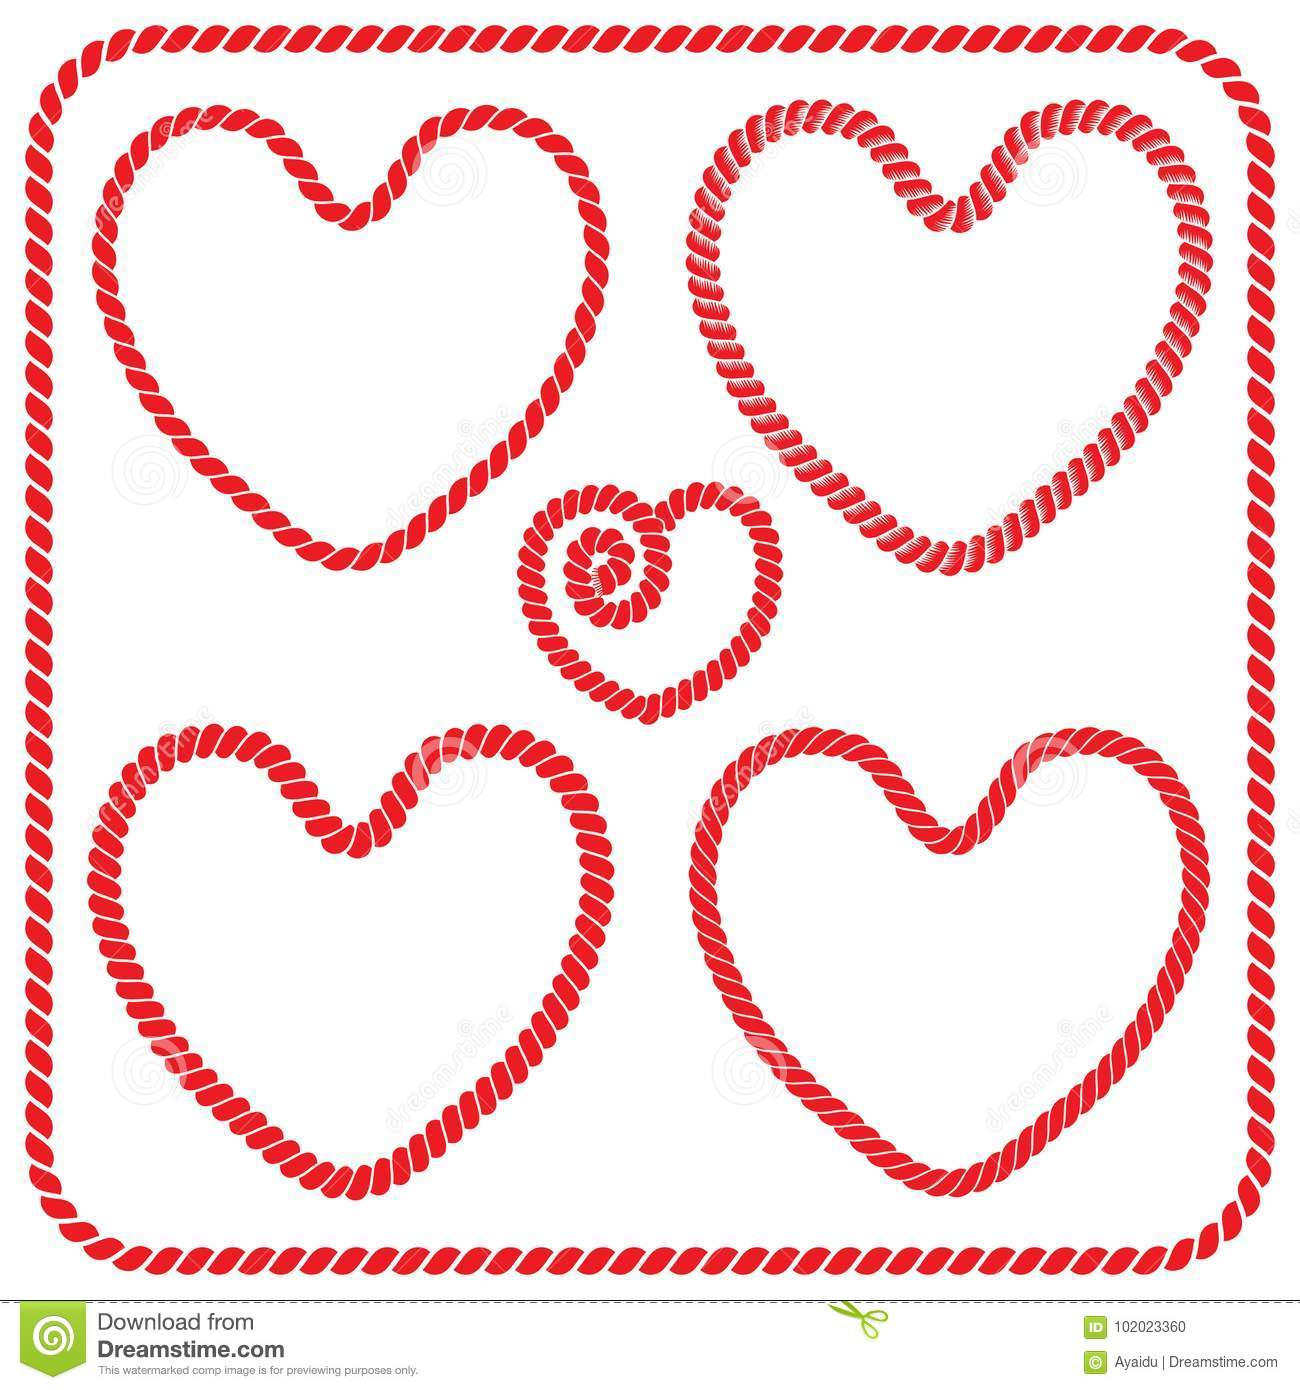 a2868bfab2 Vector set of twisted rope frames and square frames heart shaped. Collection  of romantic frames of red color for decoration and design of postcards for  St. ...